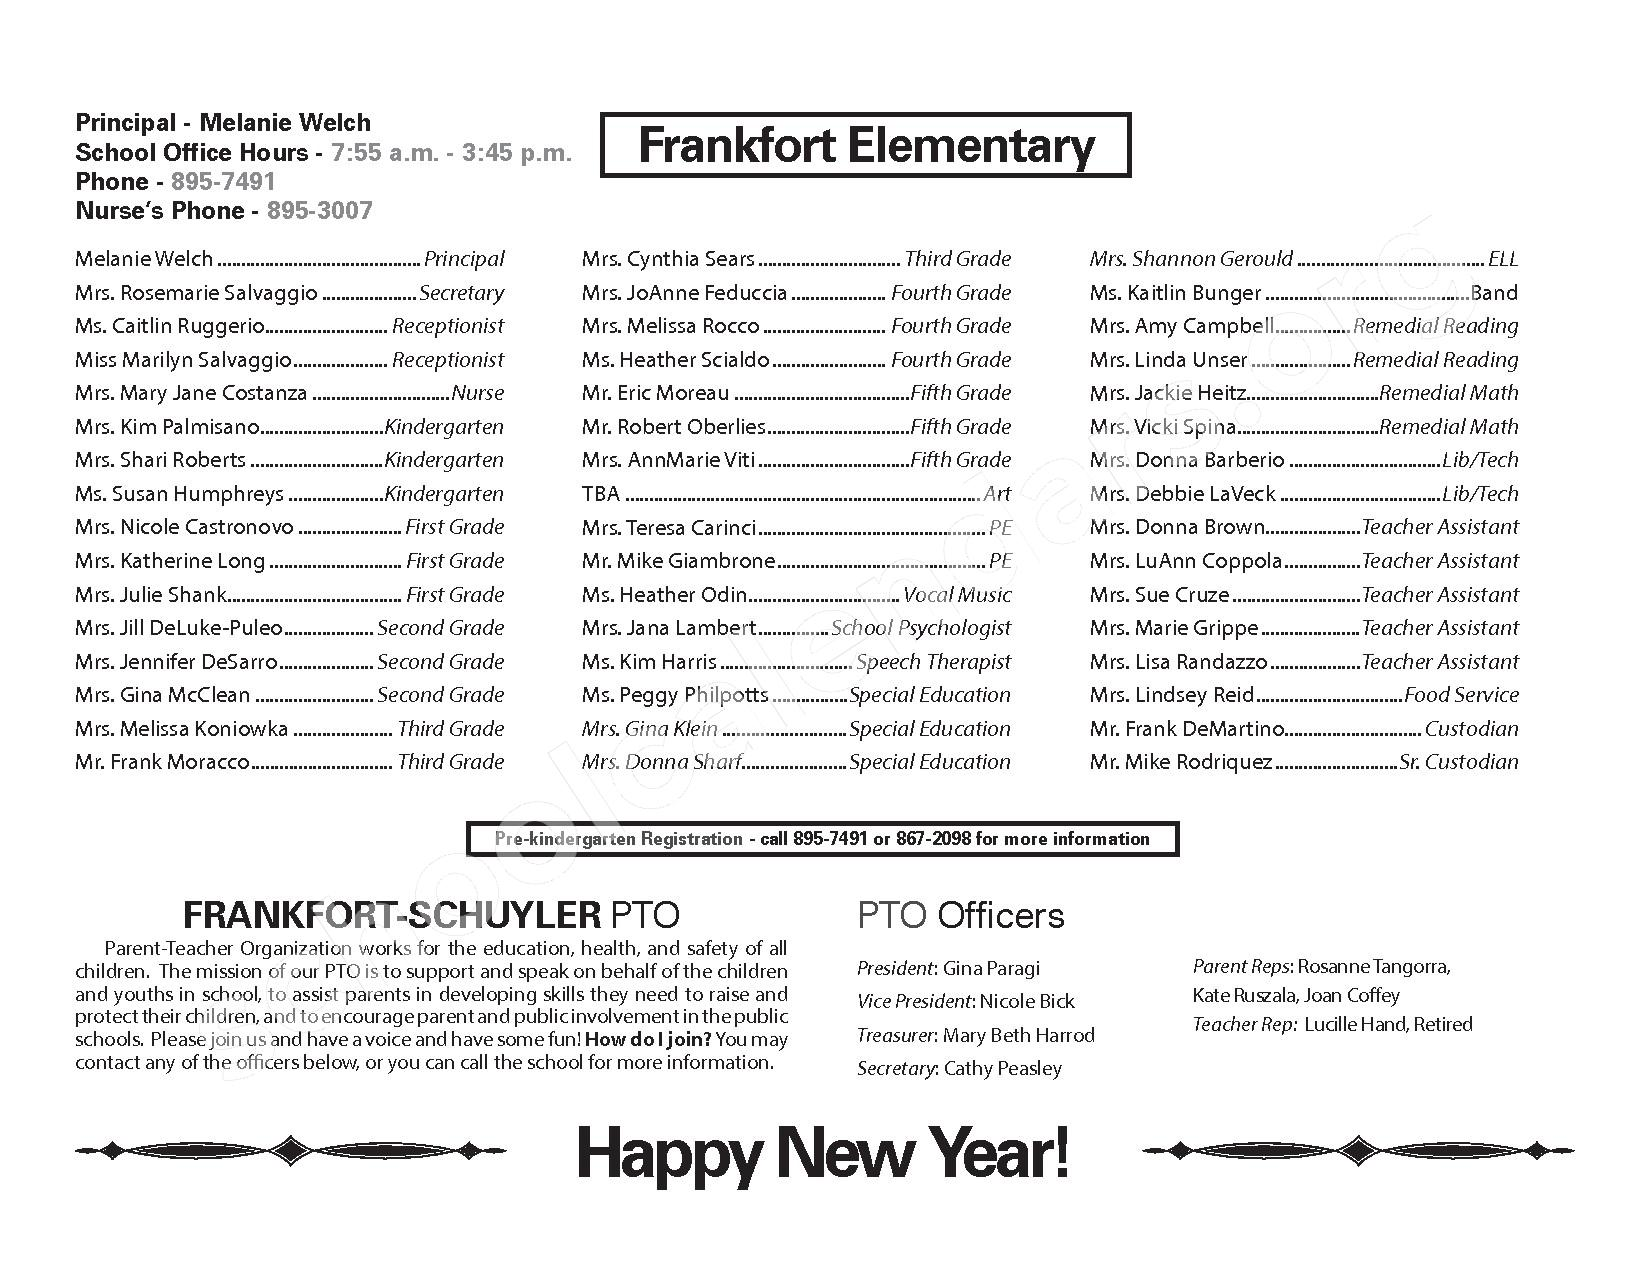 2016 - 2017 District Calendar – West Frankfort Elementary School – page 12